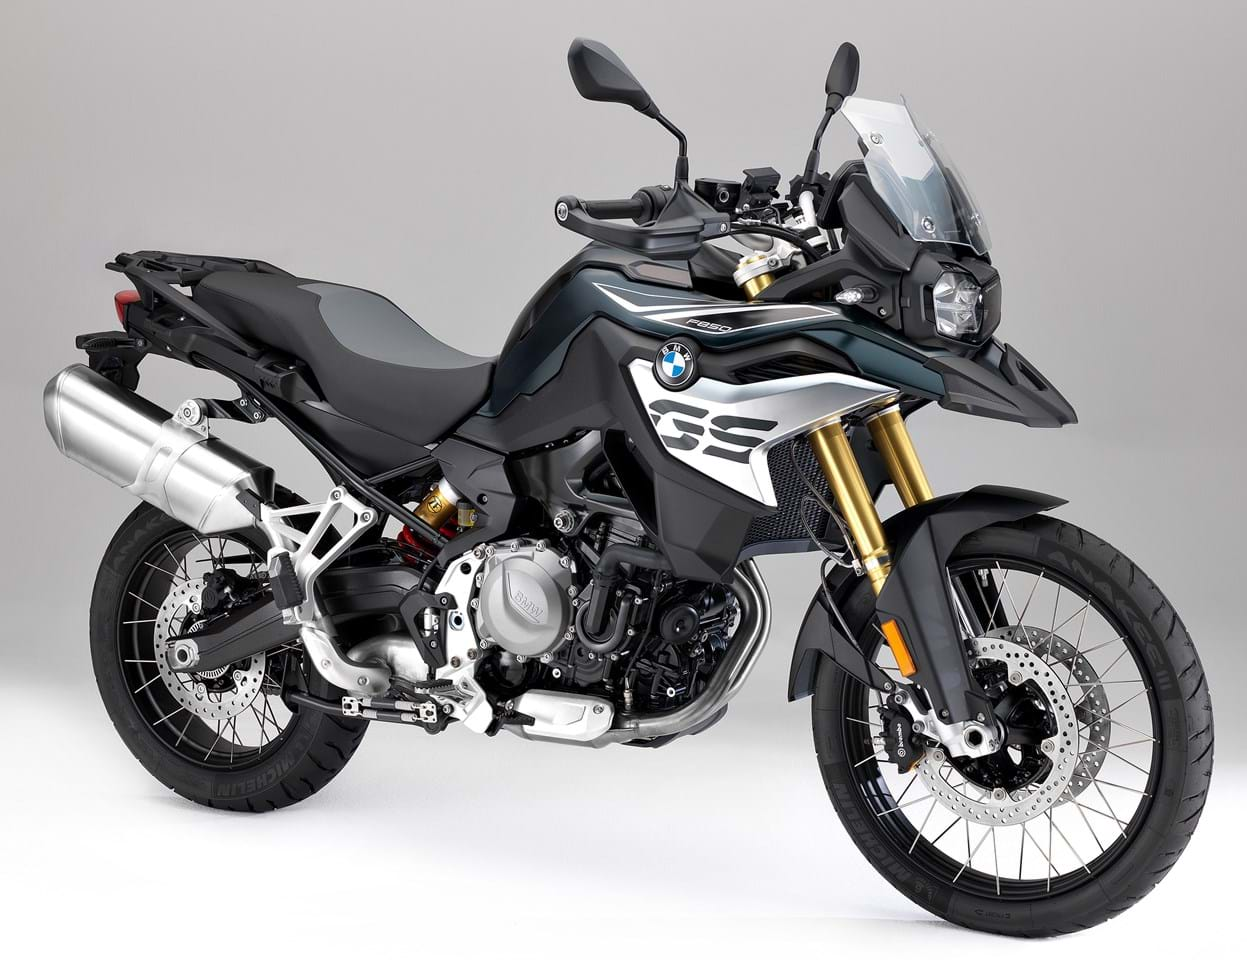 bmw enduro f850gs 2018 on for sale price guide the. Black Bedroom Furniture Sets. Home Design Ideas